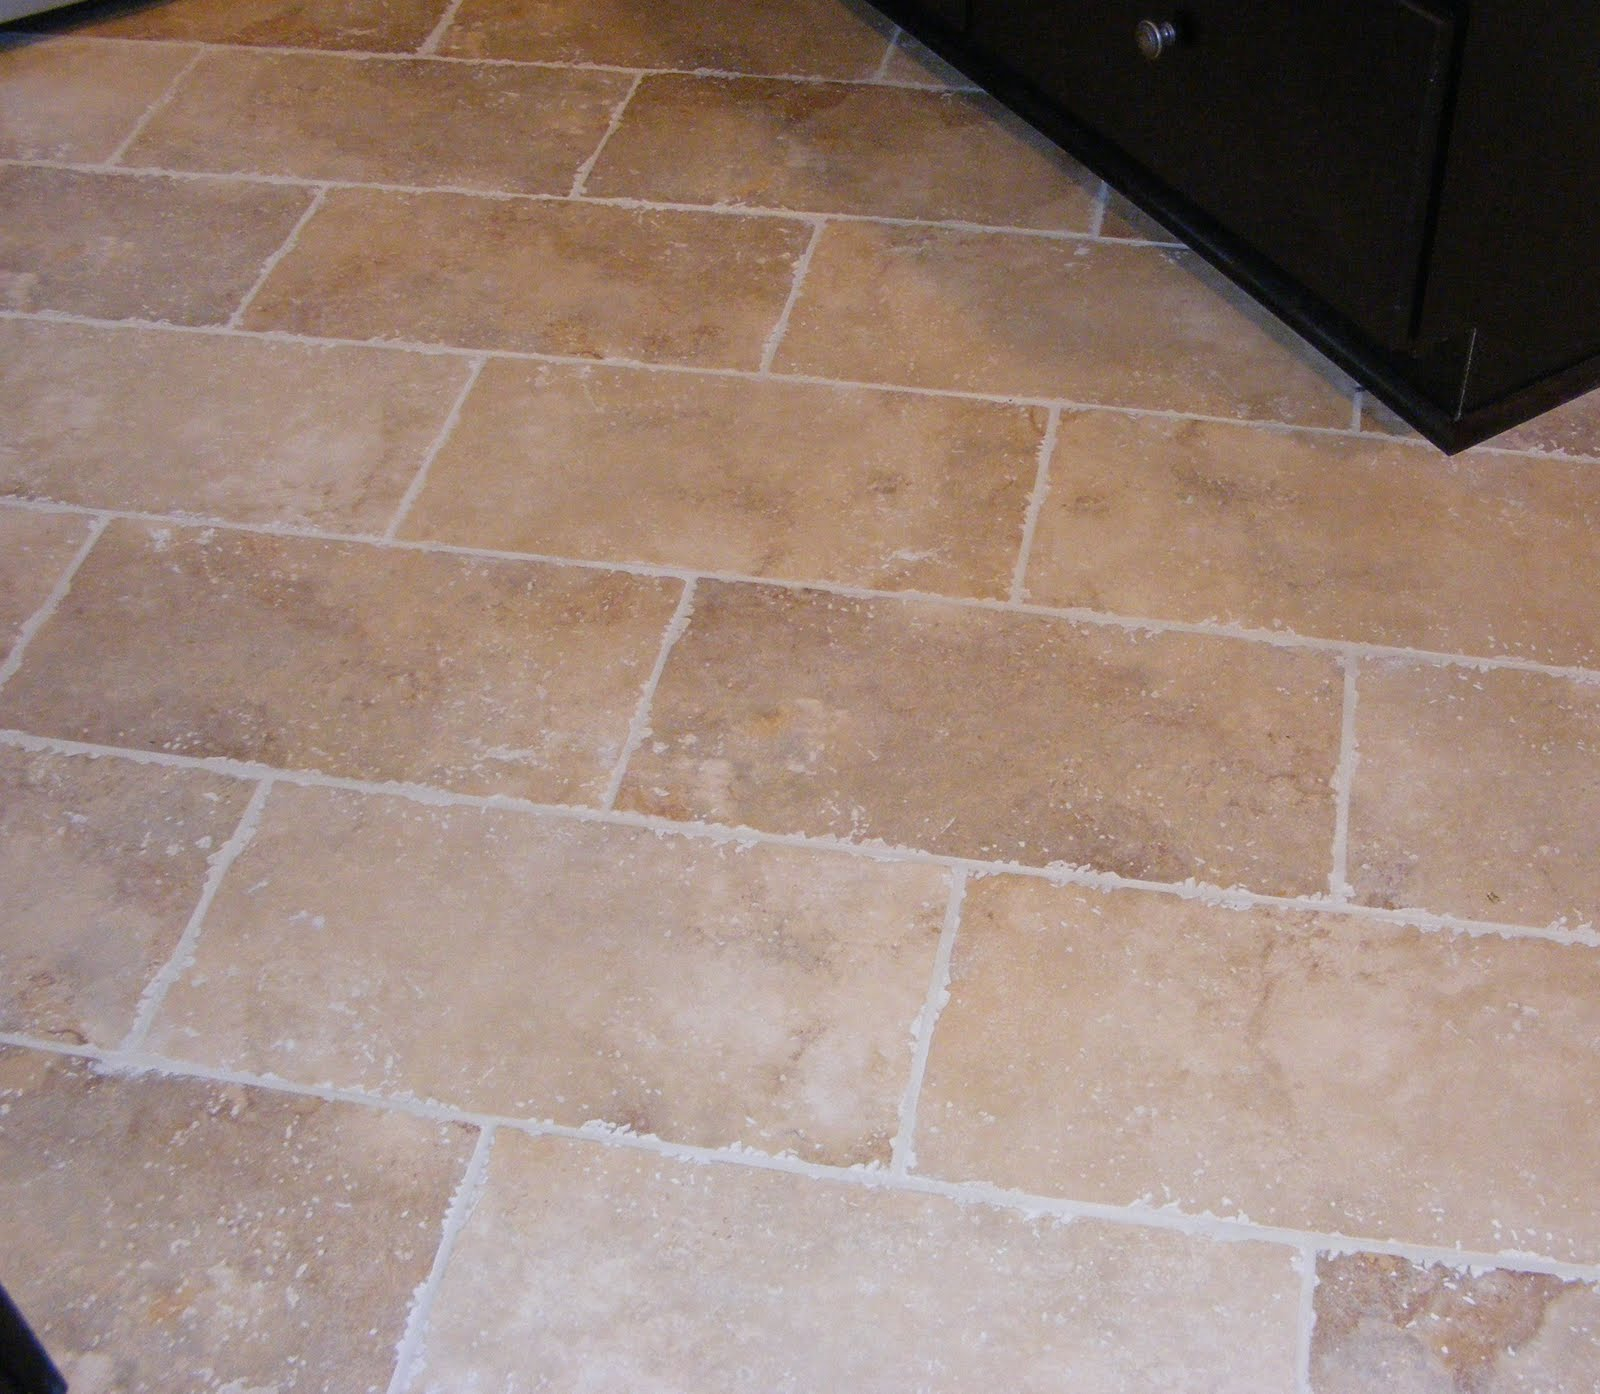 Rectangular Floor Tile Design HomesFeed : Rectangular Cream Tile Kitchen Floor from homesfeed.com size 1600 x 1394 jpeg 200kB